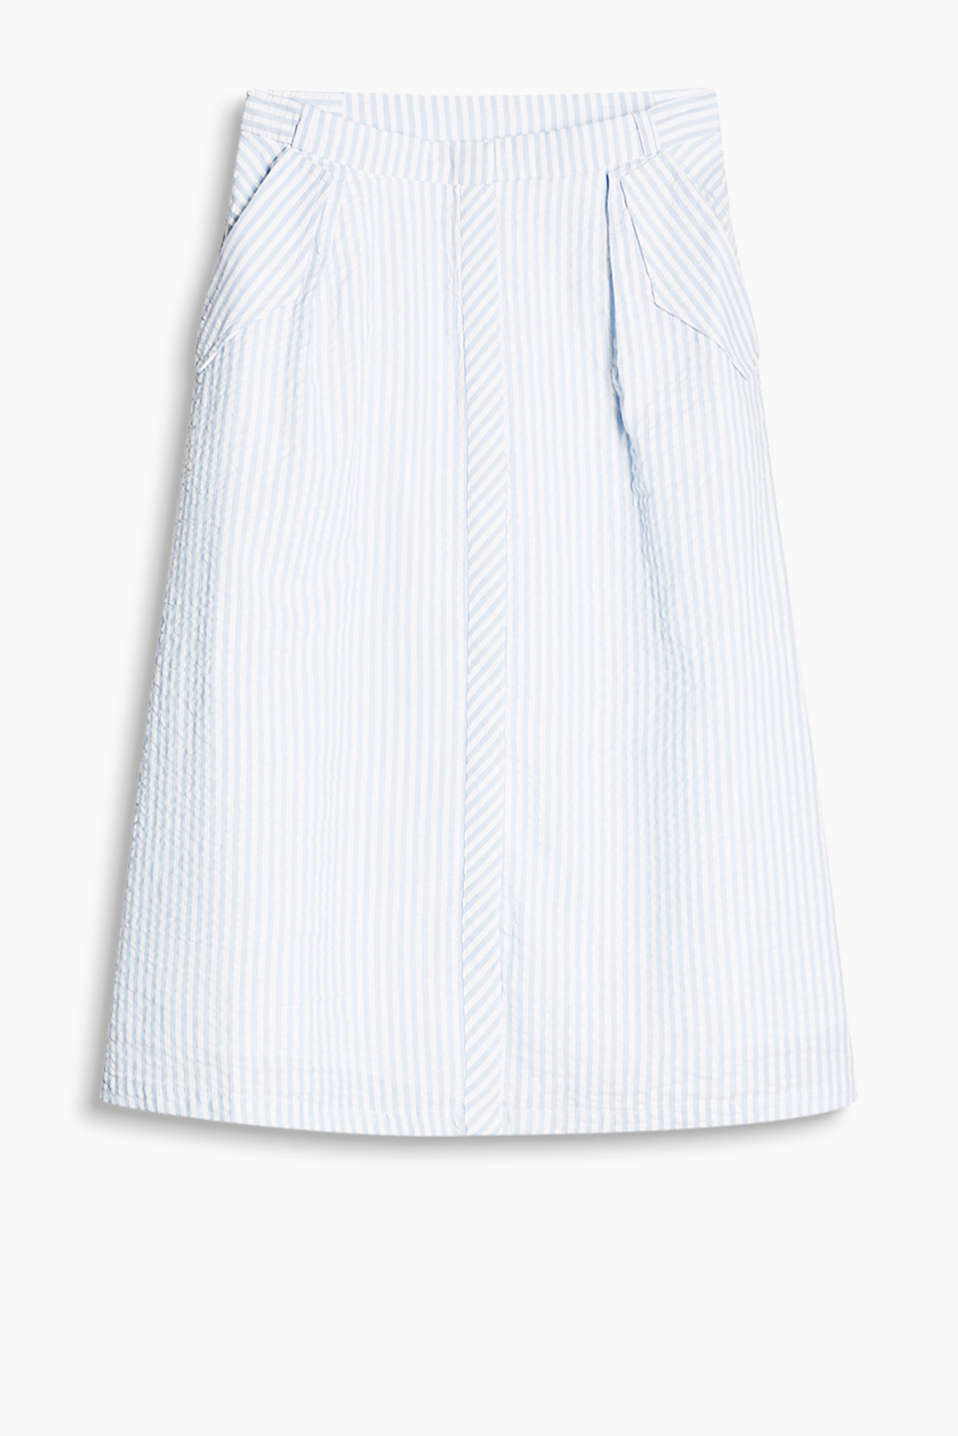 Floaty, flared cotton skirt with fine stripes, slit pockets and a concealed button placket